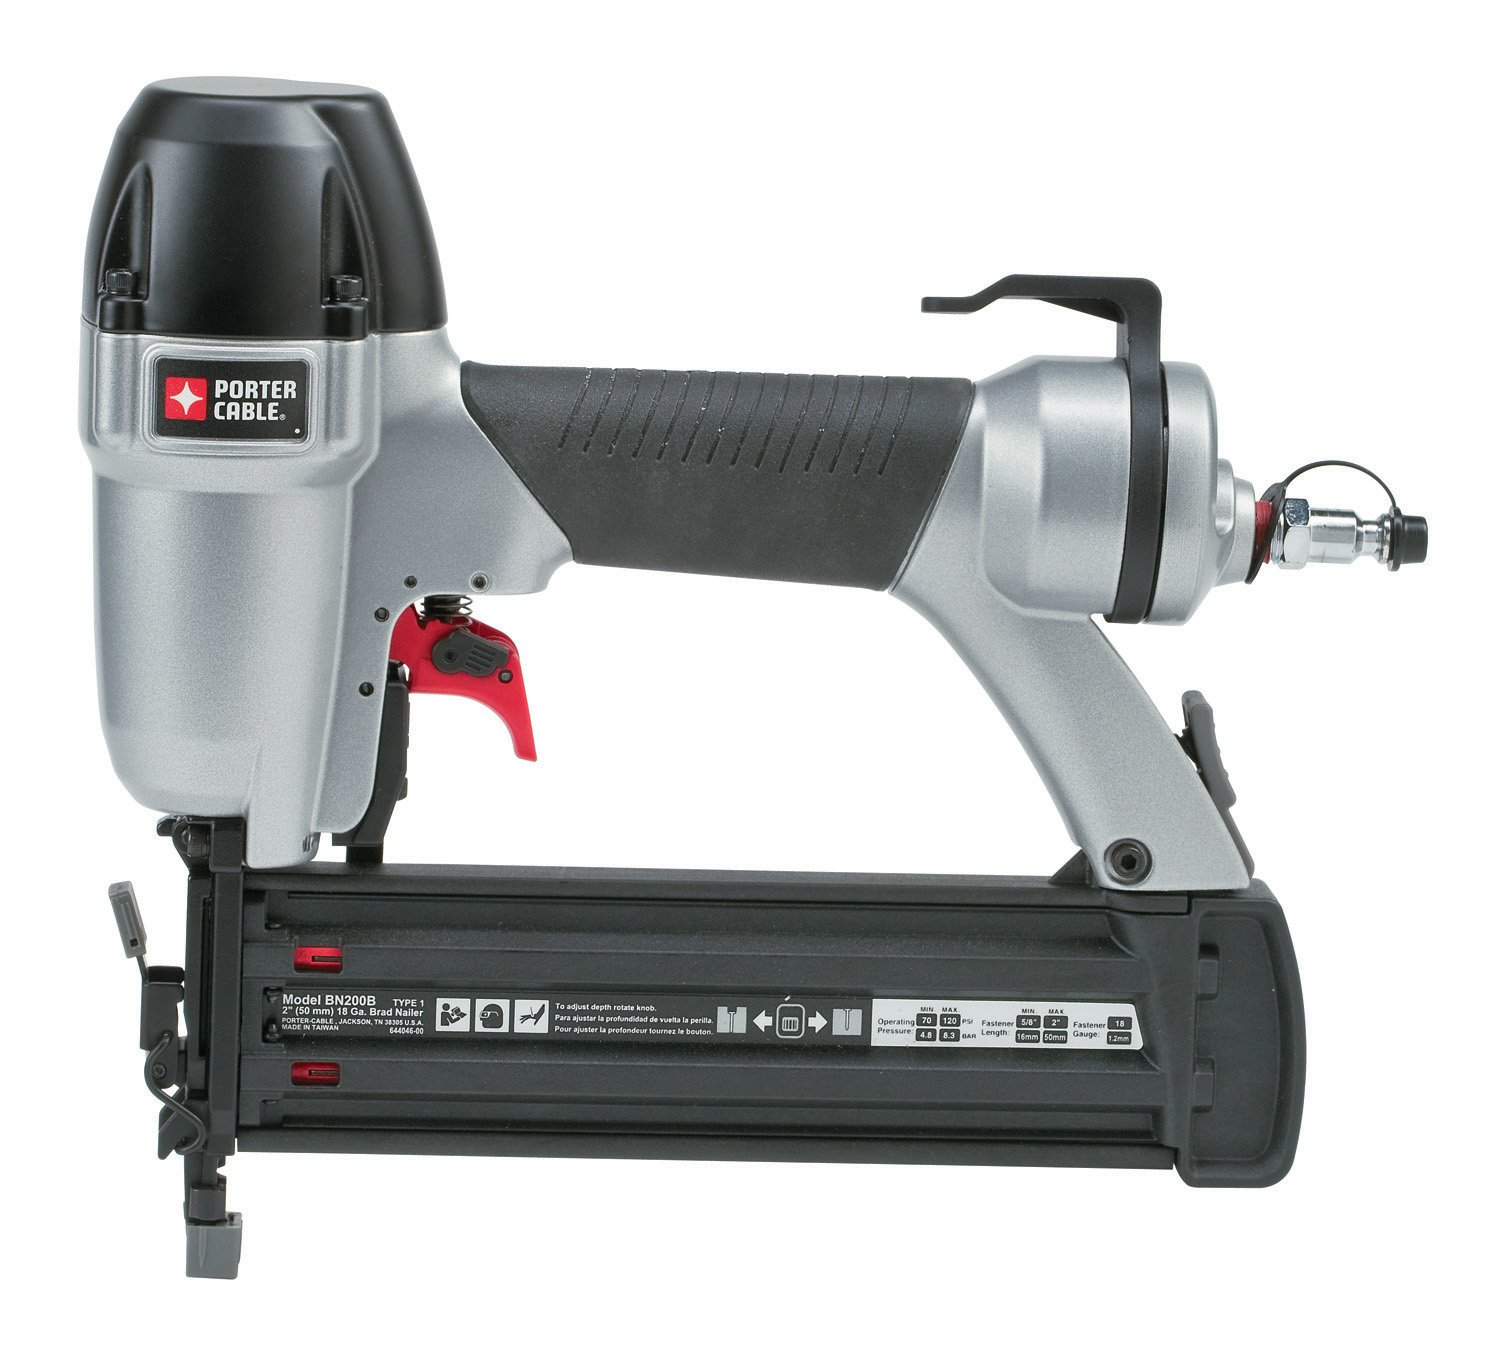 PORTER-CABLE BN200B 5/8 Inch to 2 Inch 18-Gauge Brad Nailer - Power ...